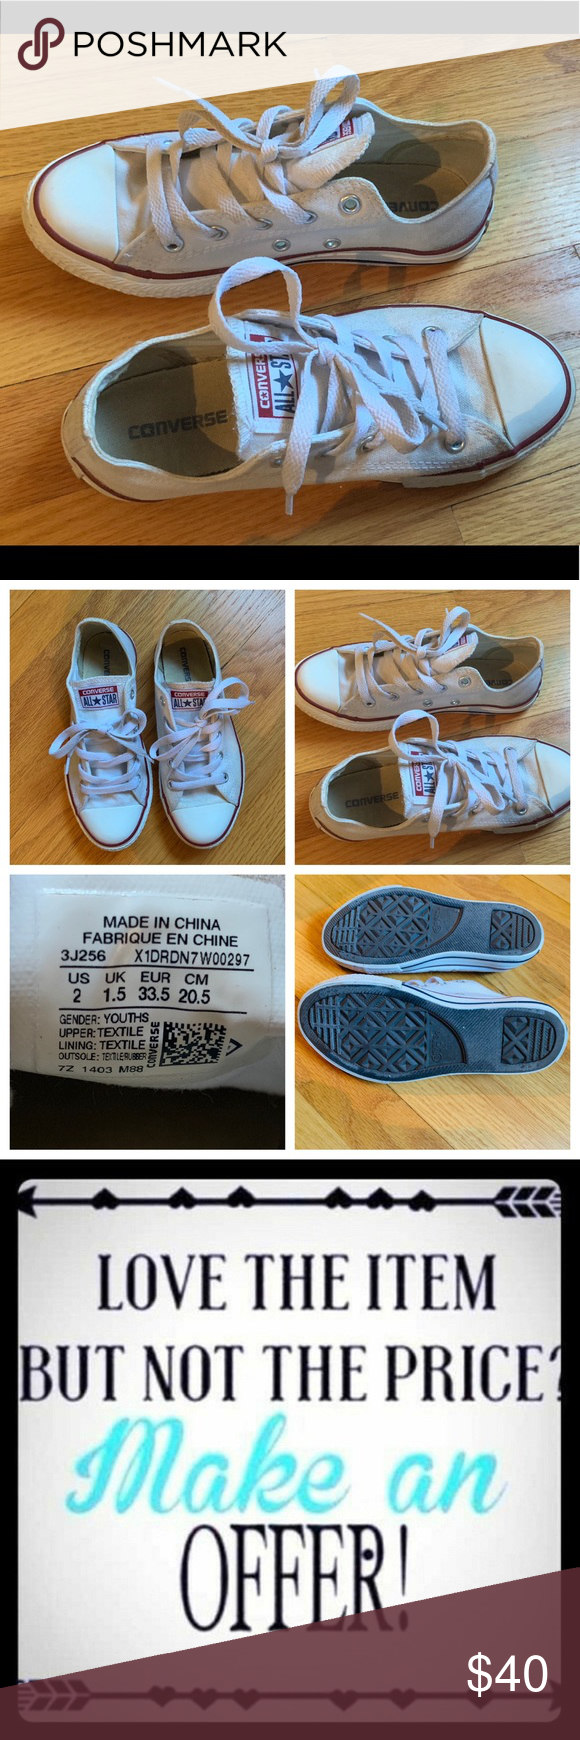 Converse Youth size 2 in EUC! These Converse are in like new d4fec5758